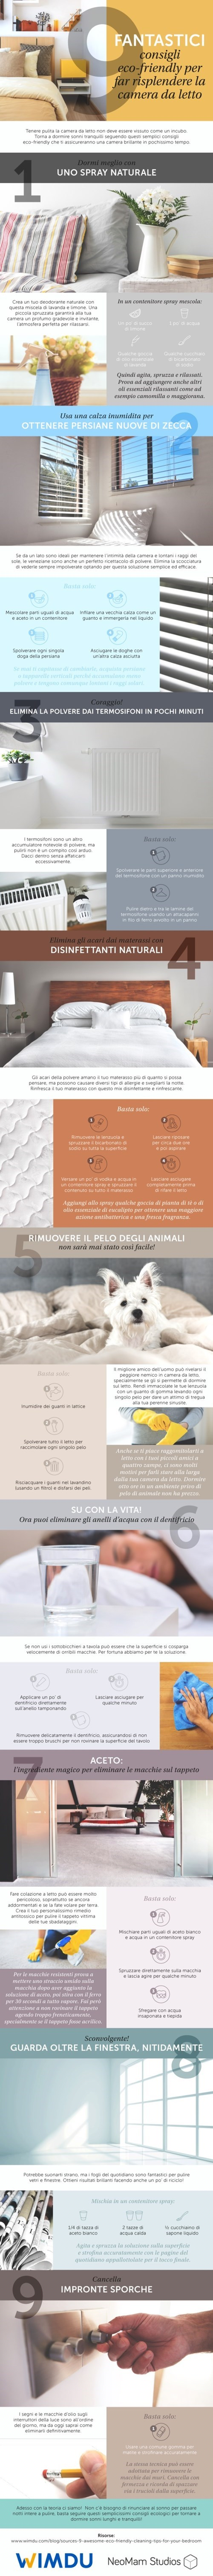 9 awesome, eco-friendly cleaning tips for your bedroom(Italian)